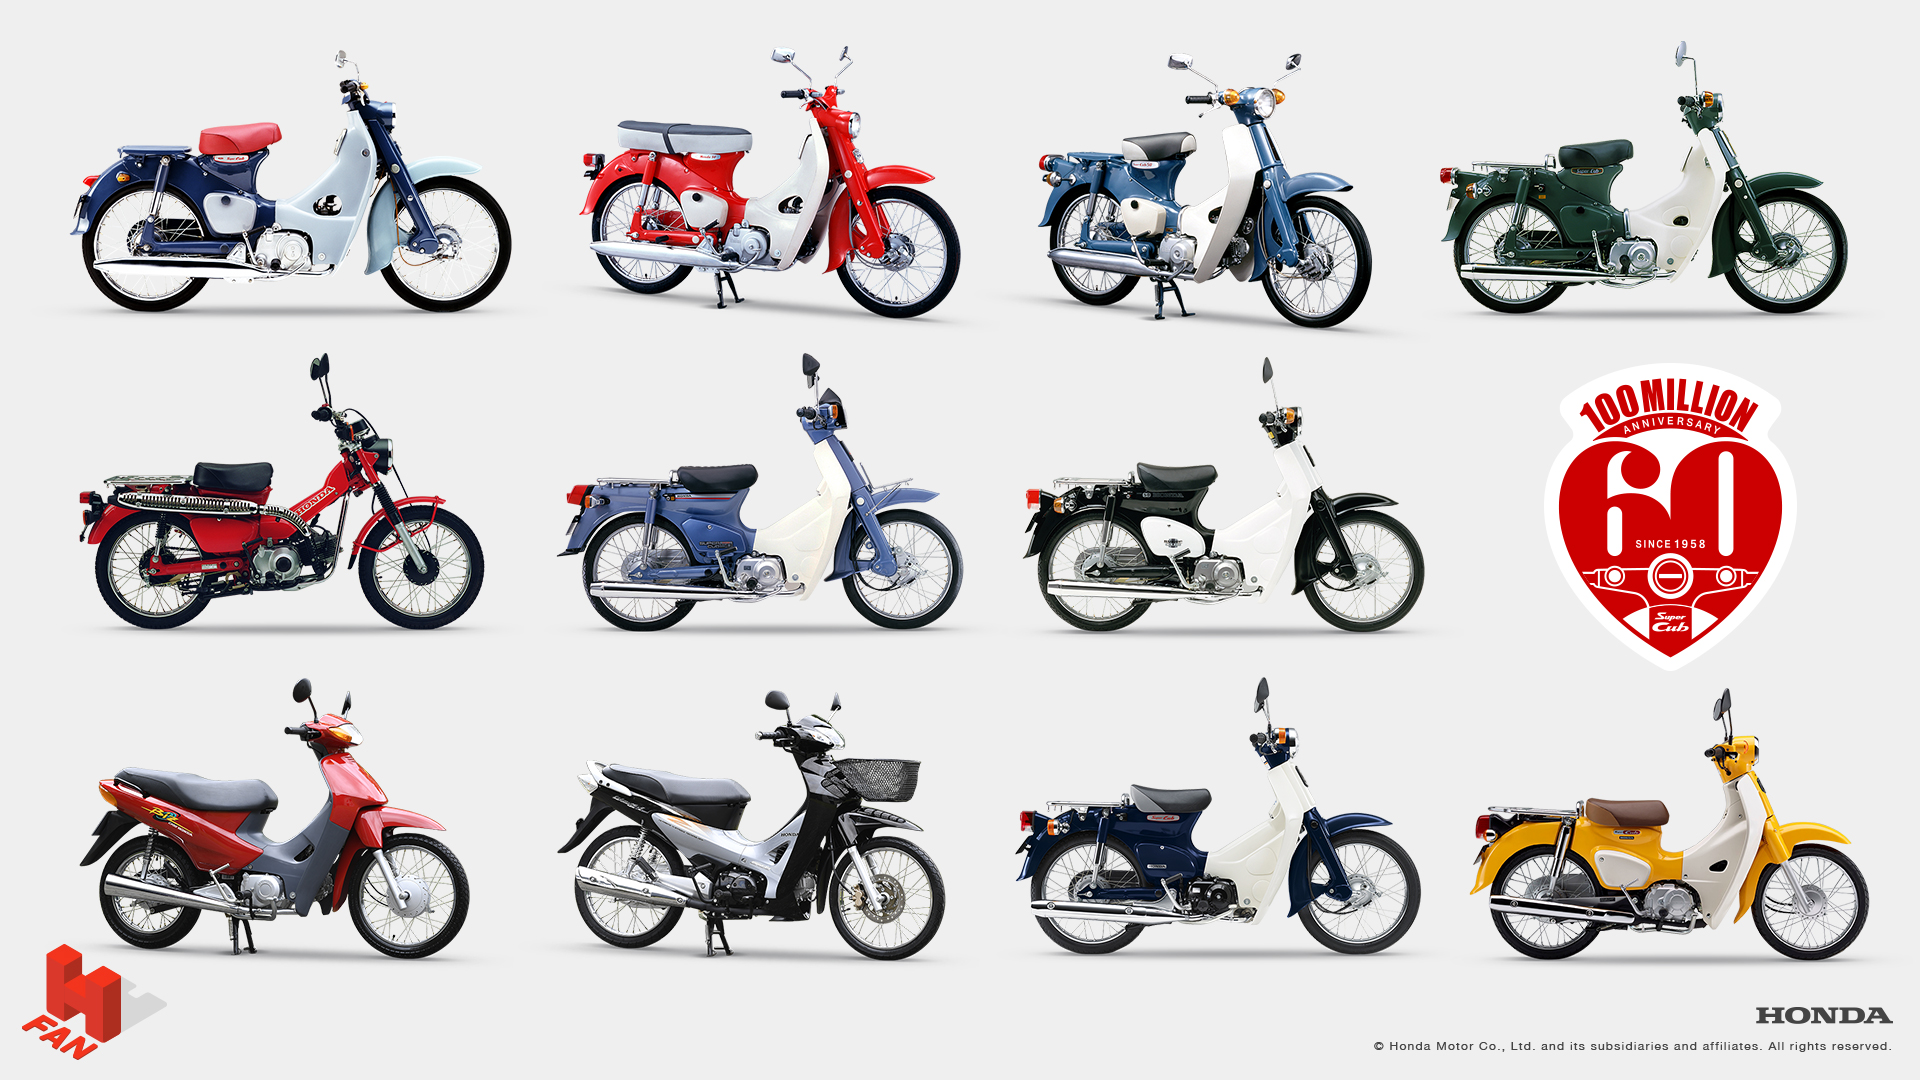 Honda Has Also Created A Special Website For The Celebration Of SuperCub It Describes Super Cub As Unique To Japan And World